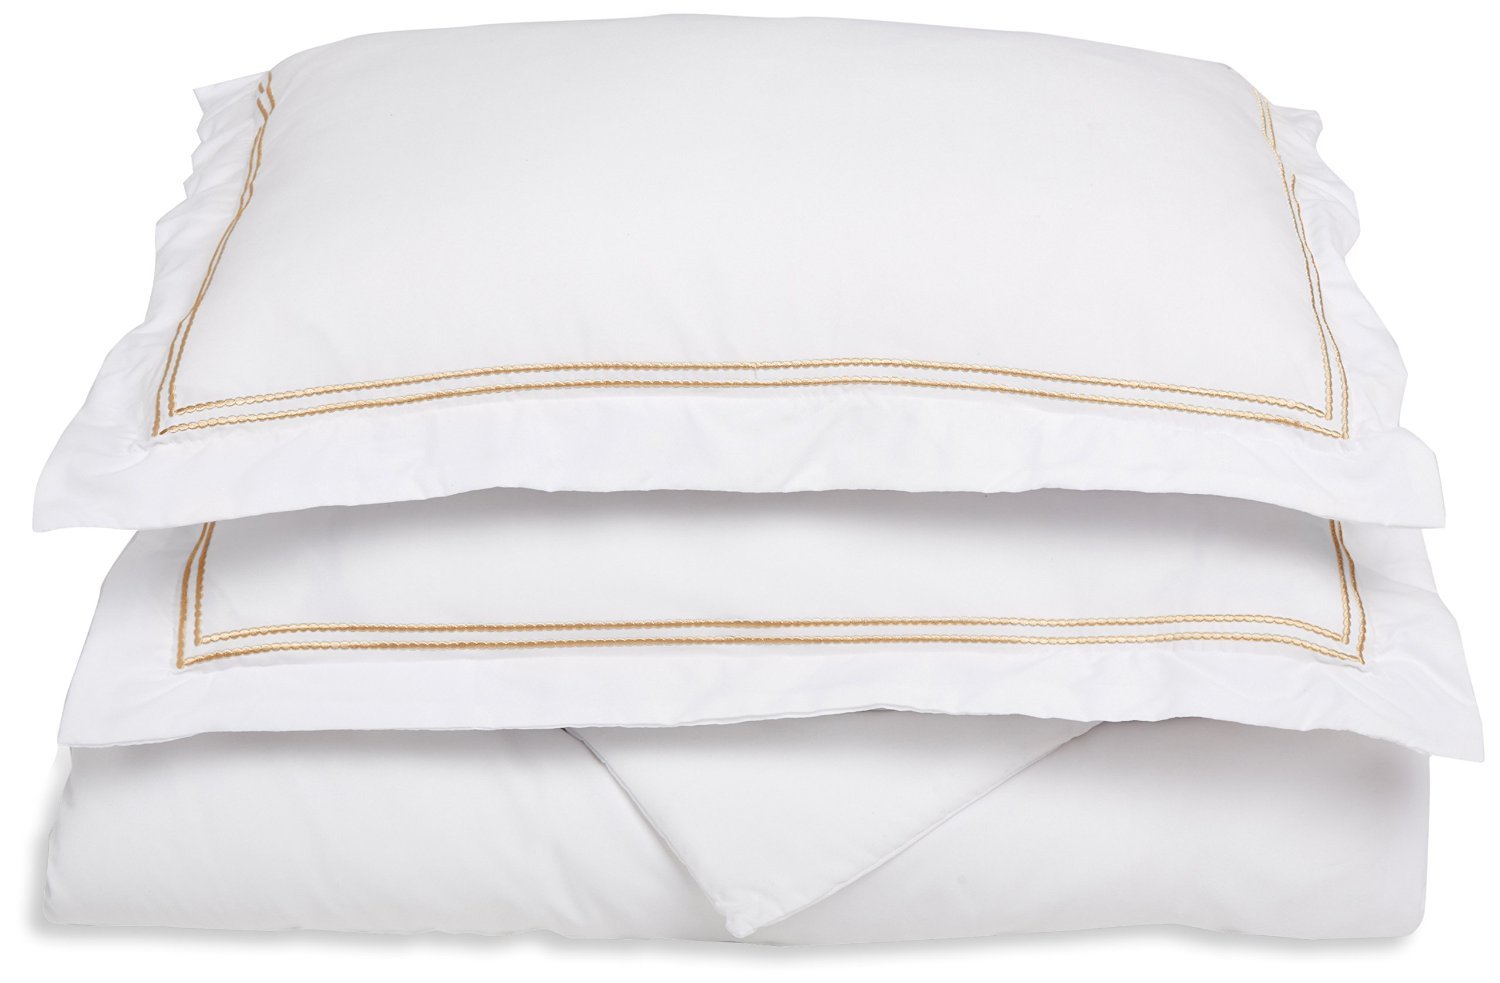 Super Soft, Light Weight, 100% Brushed Microfiber, Twin/Twin XL, Wrinkle Resistant, White Duvet Cover with Gold 2-Line Embroidered Pillowshams in Gift Box